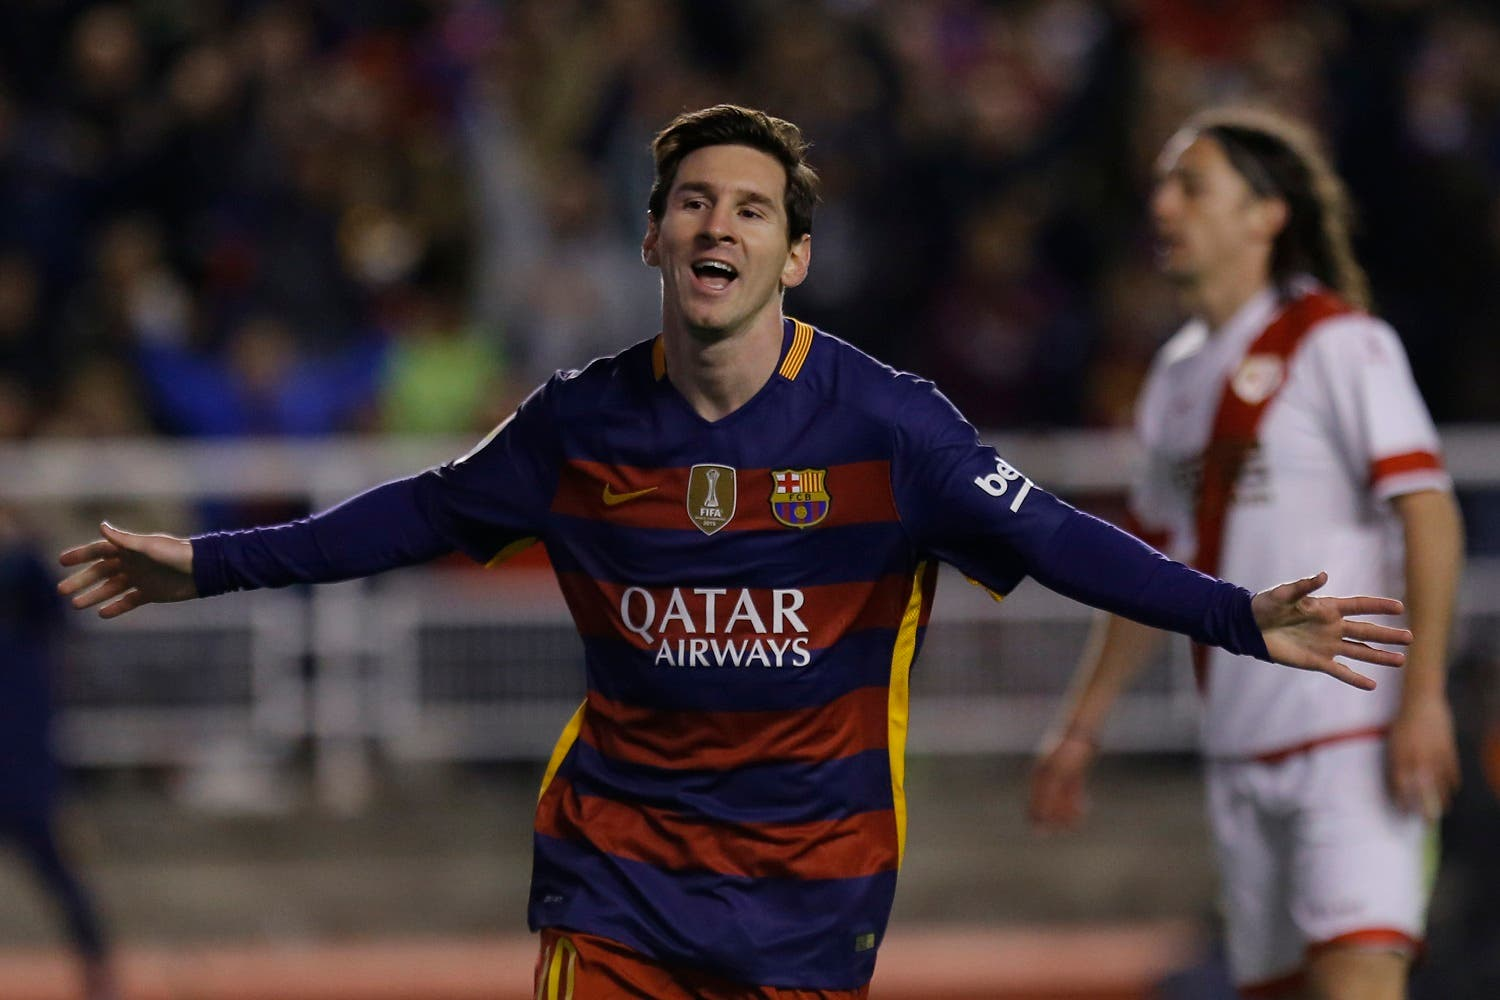 Barcelona's Lionel Messi celebrates after scoring his side's third goal against Rayo Vallecano during a Spanish La Liga soccer match between Barcelona and Rayo Vallecano at the Vallecas stadium in Madrid, Thursday, March 3, 2016. (AP)